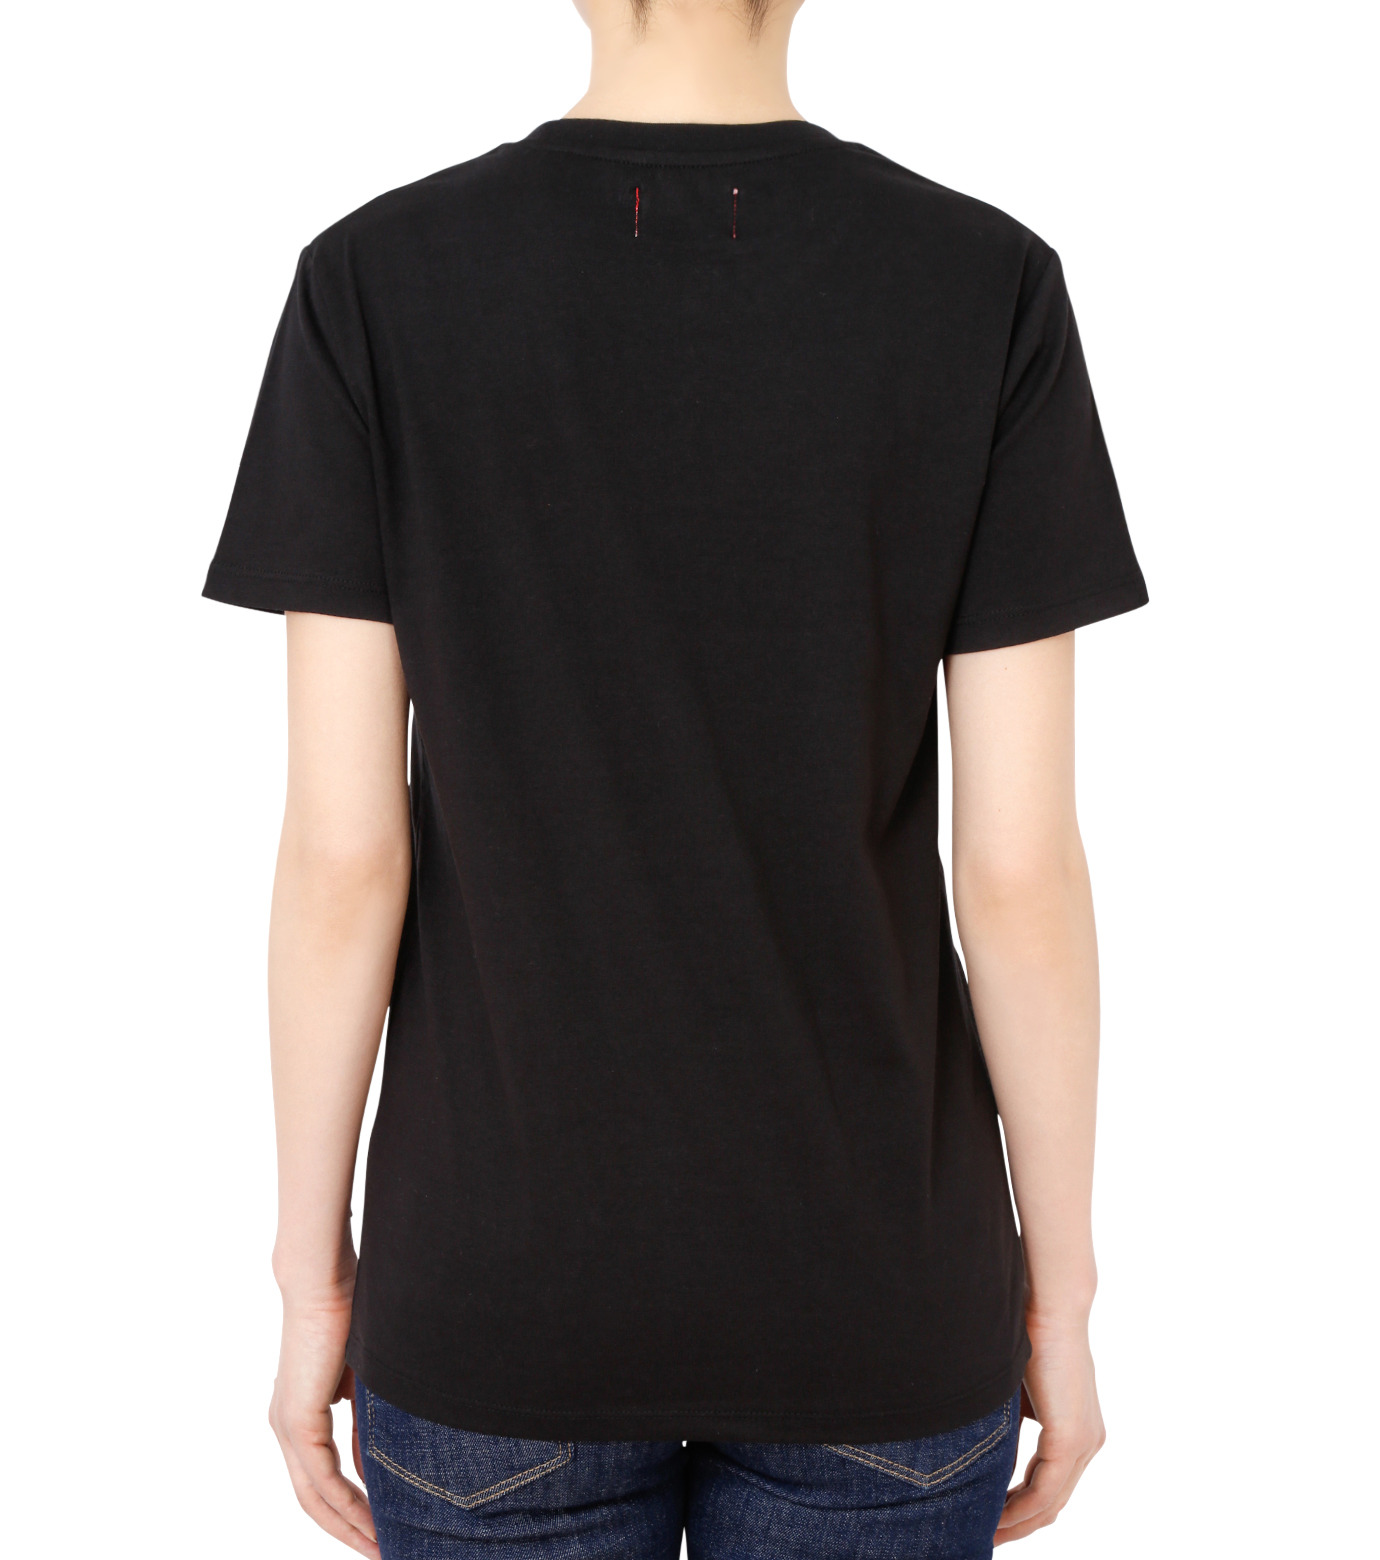 No One(ノーワン)のDots BELLEVILLE HILLS T-shirt-BLACK(カットソー/cut and sewn)-BA525-13 拡大詳細画像2